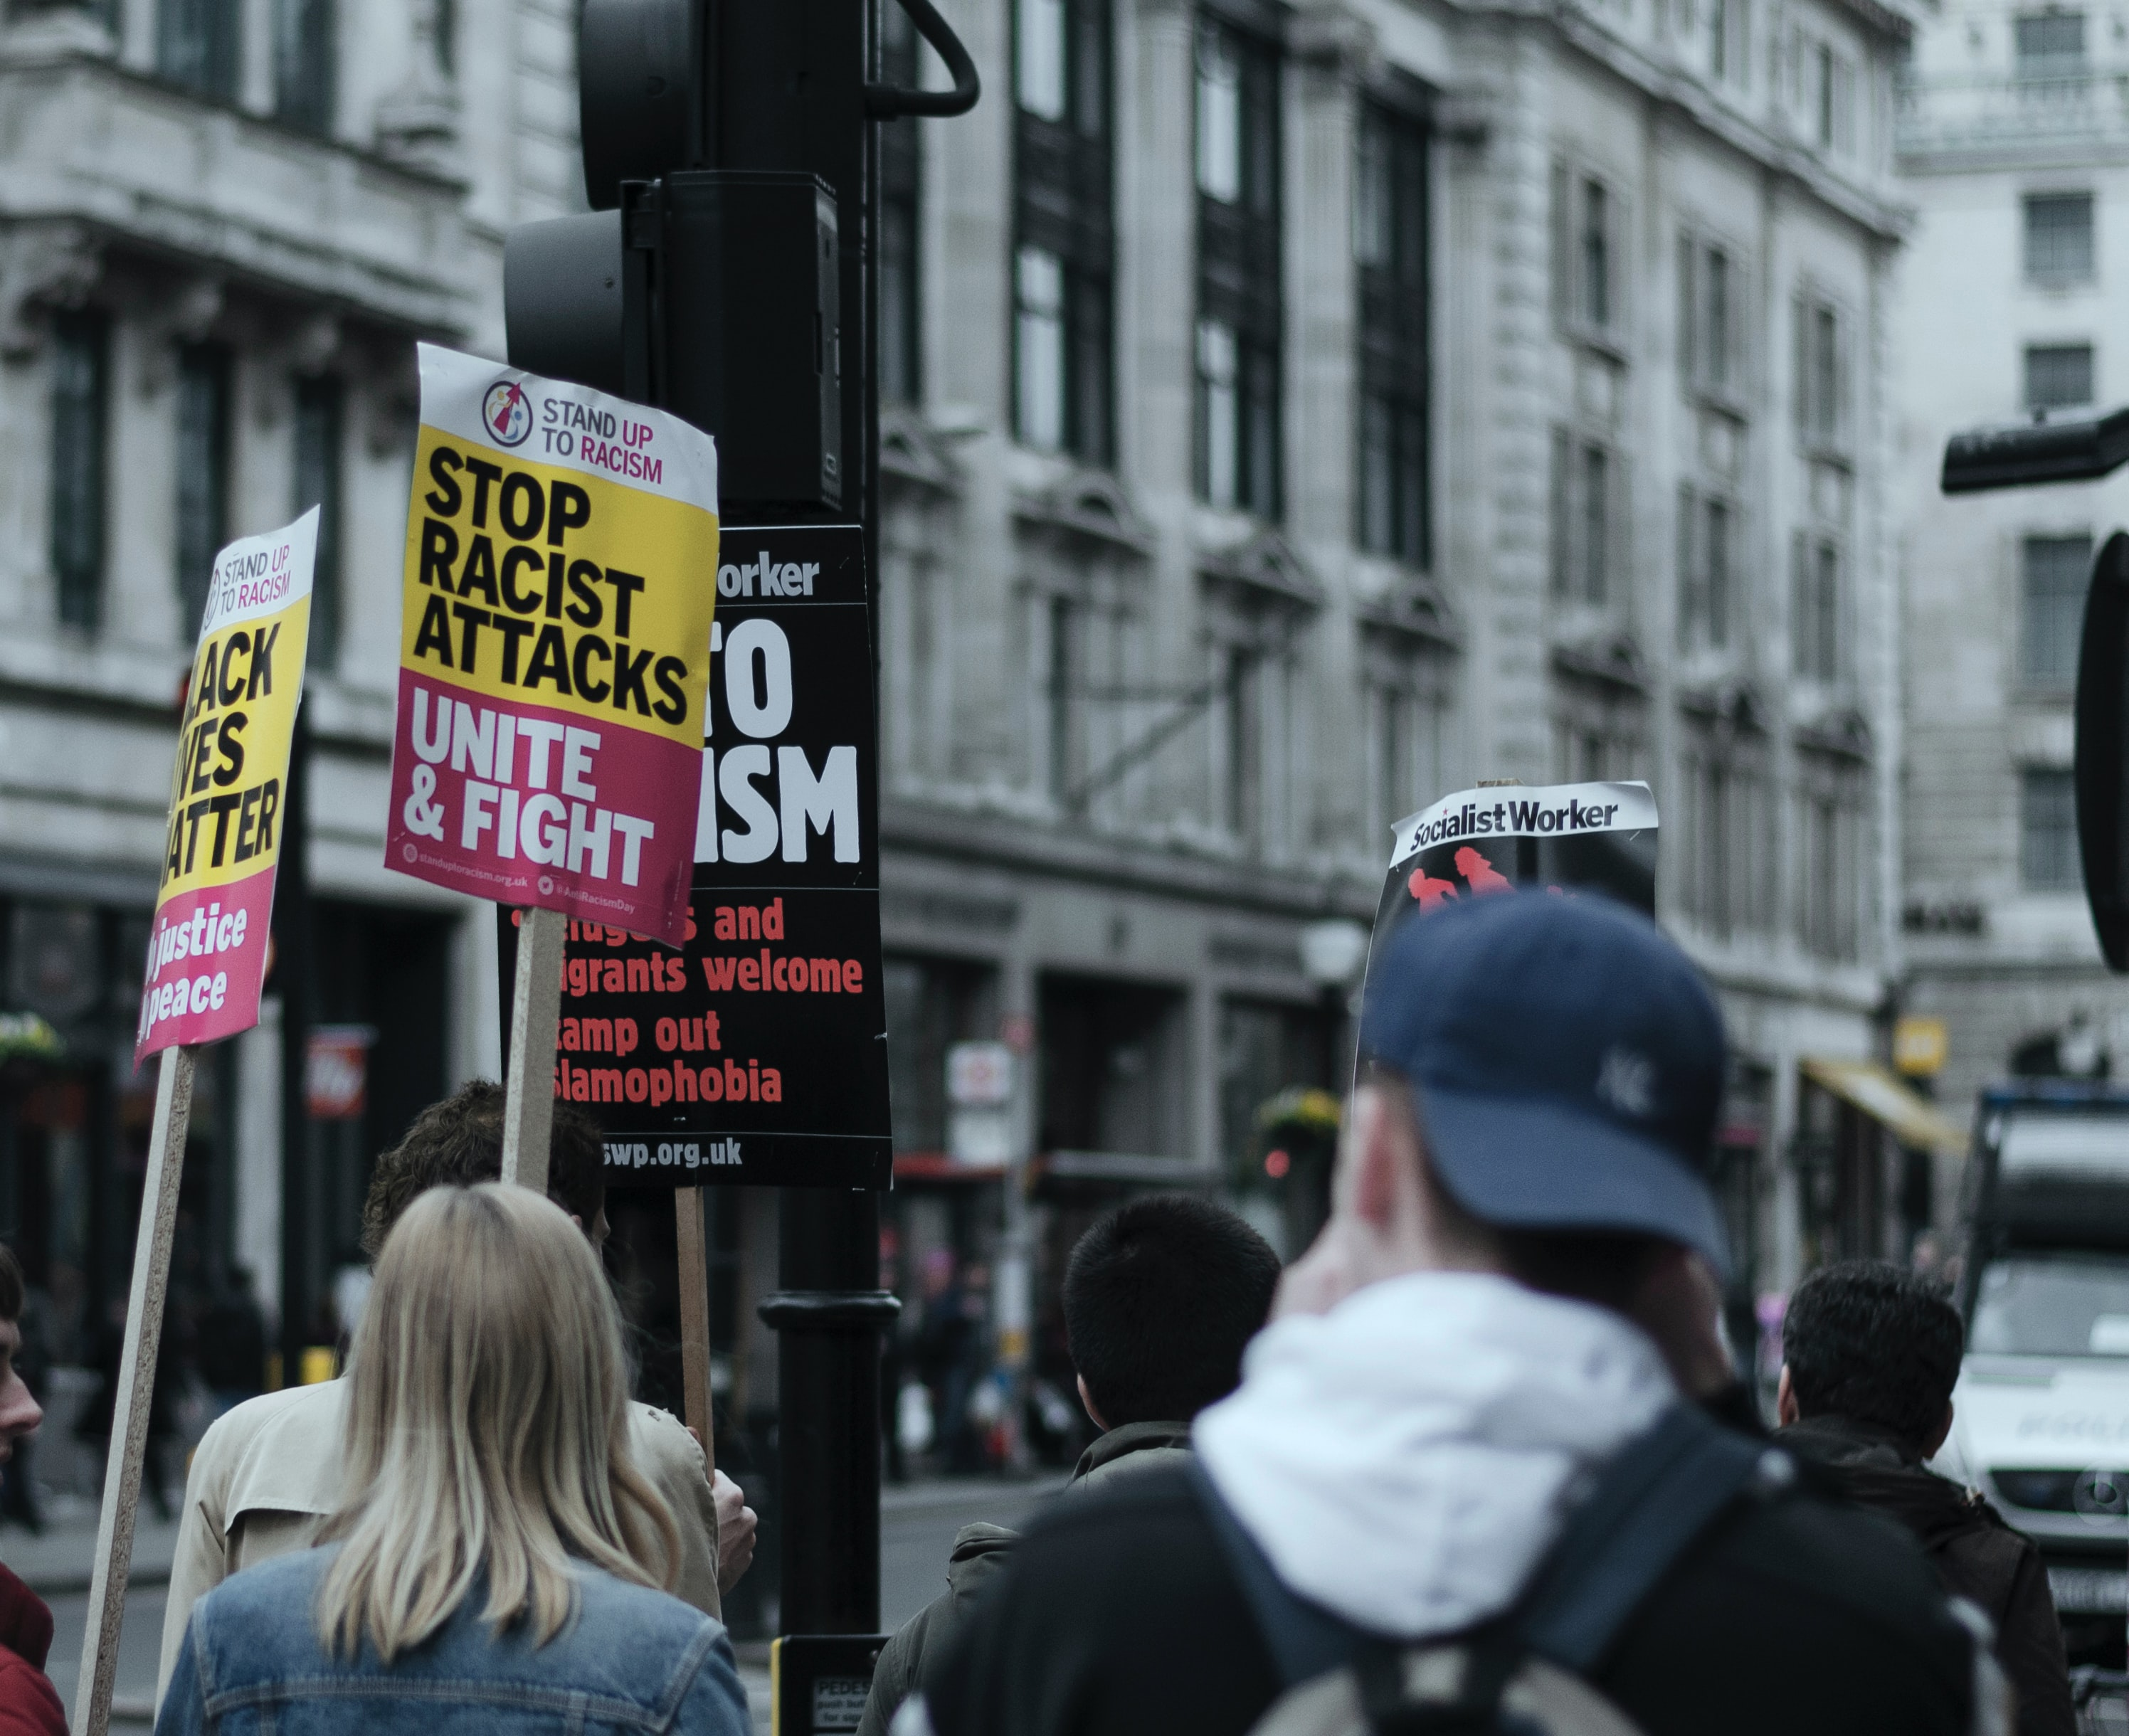 Around anti-racism protesters in London